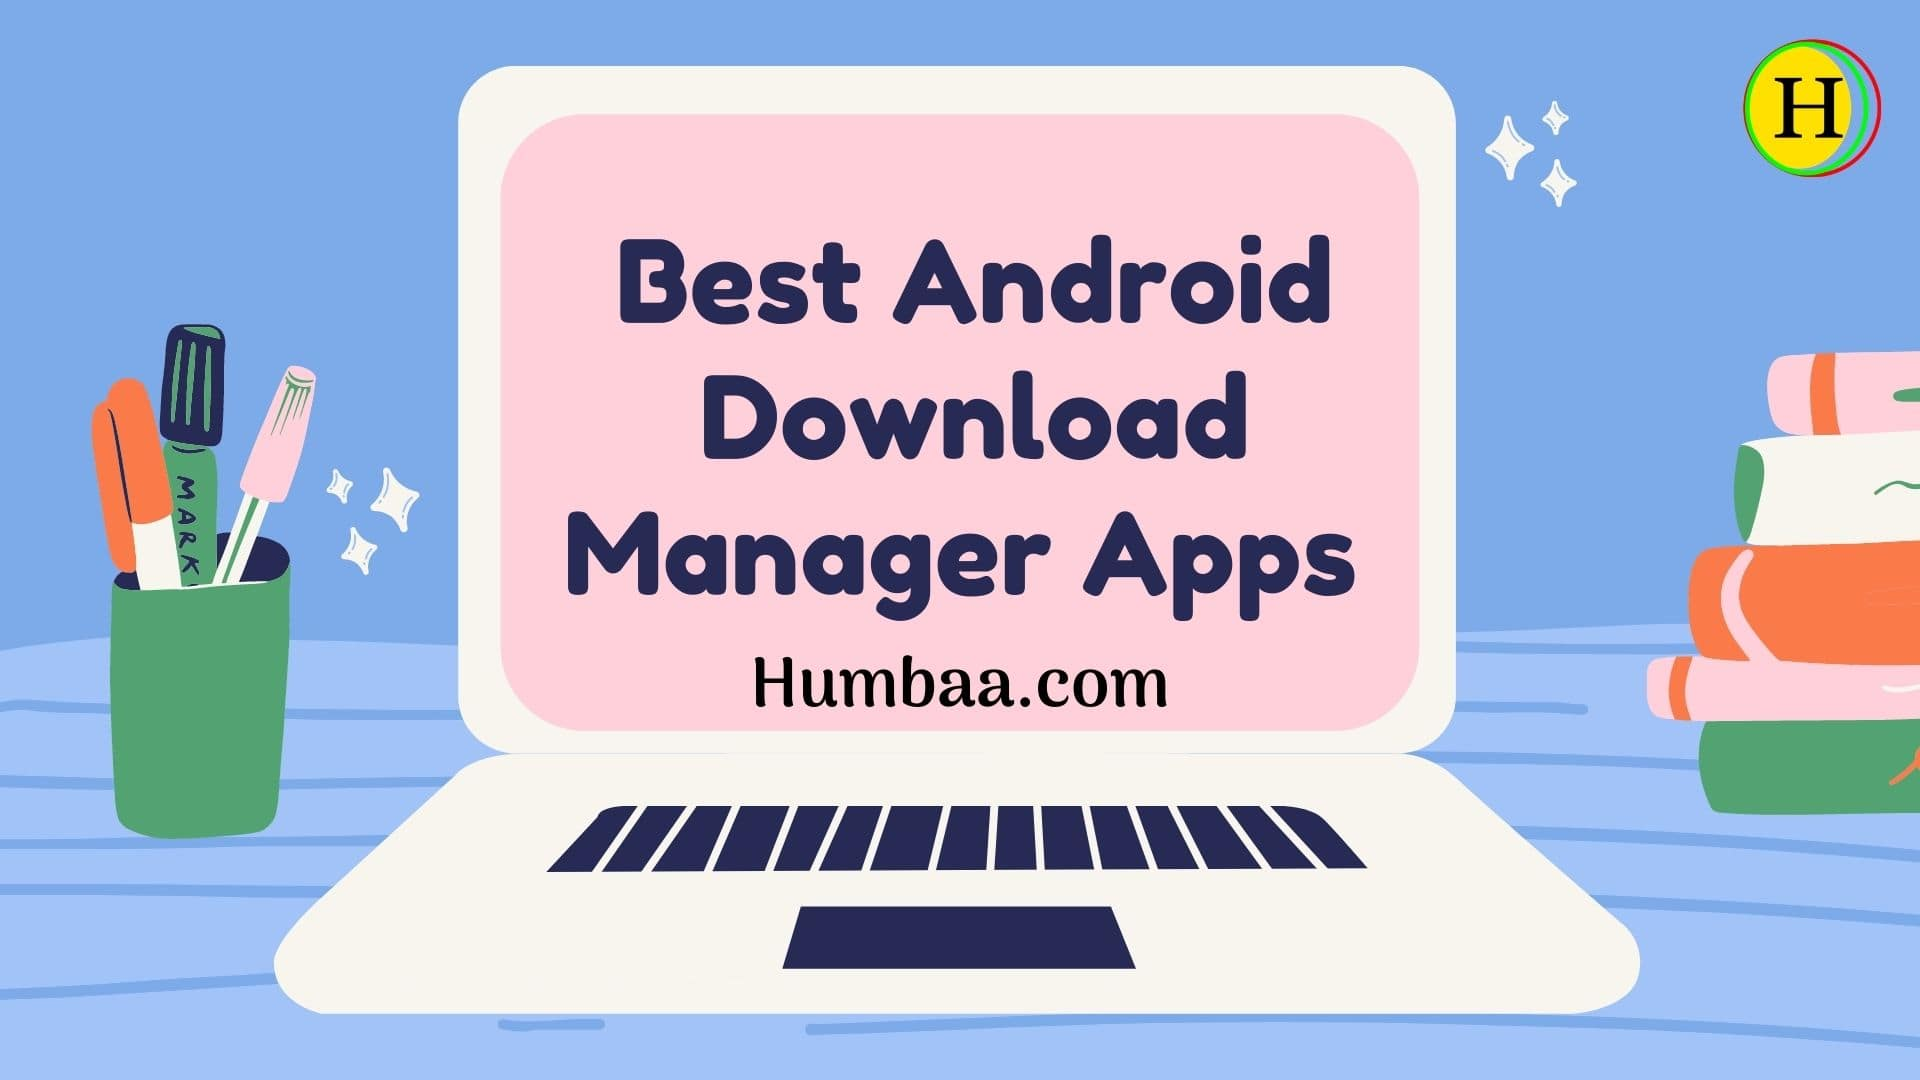 Best Download Managers for Android Smartphone